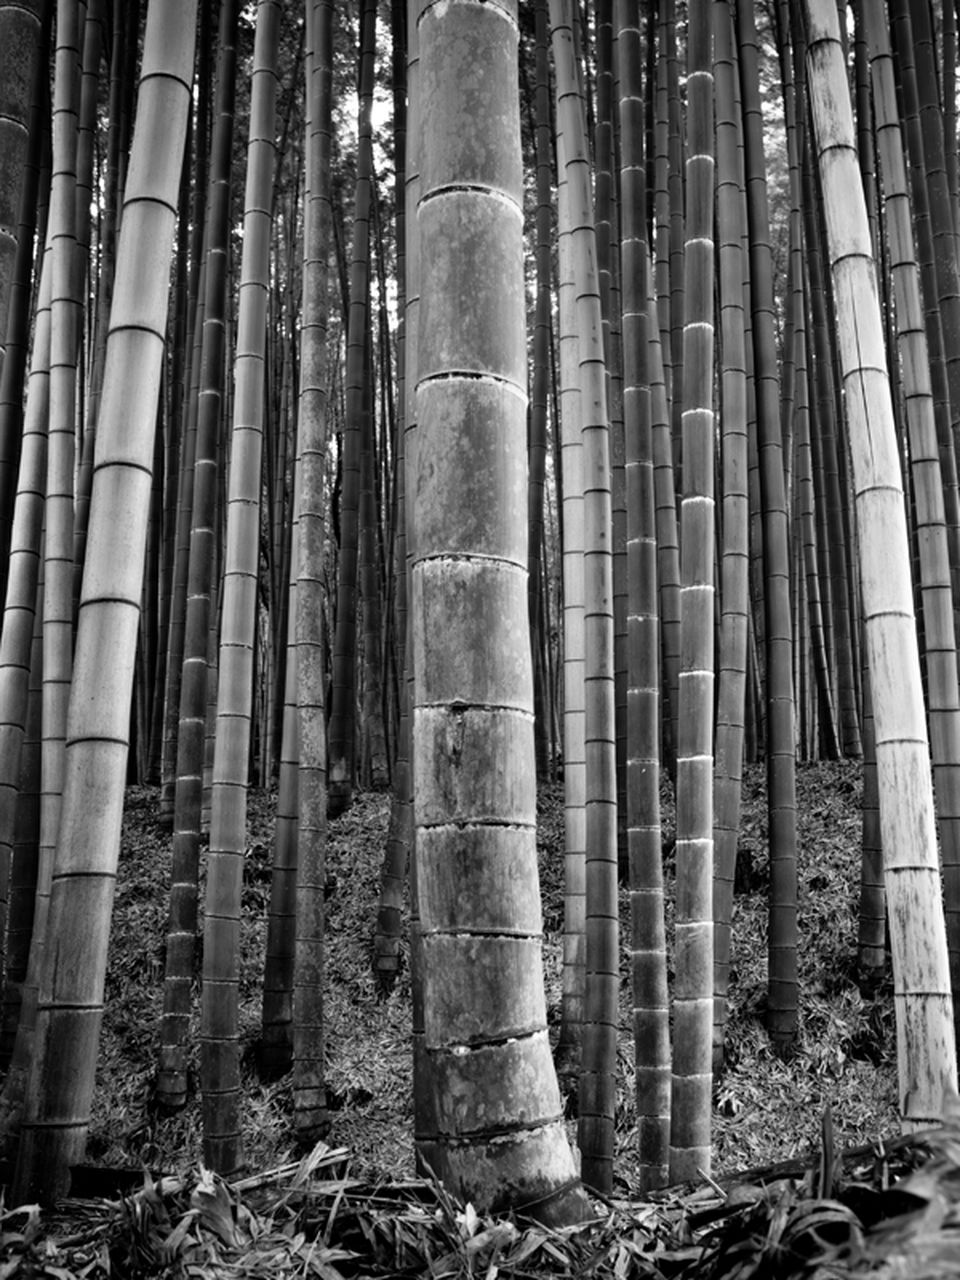 forest, land, no people, architecture, architectural column, trunk, bamboo - plant, tree trunk, tree, plant, day, nature, built structure, woodland, growth, outdoors, history, the past, bamboo, tall - high